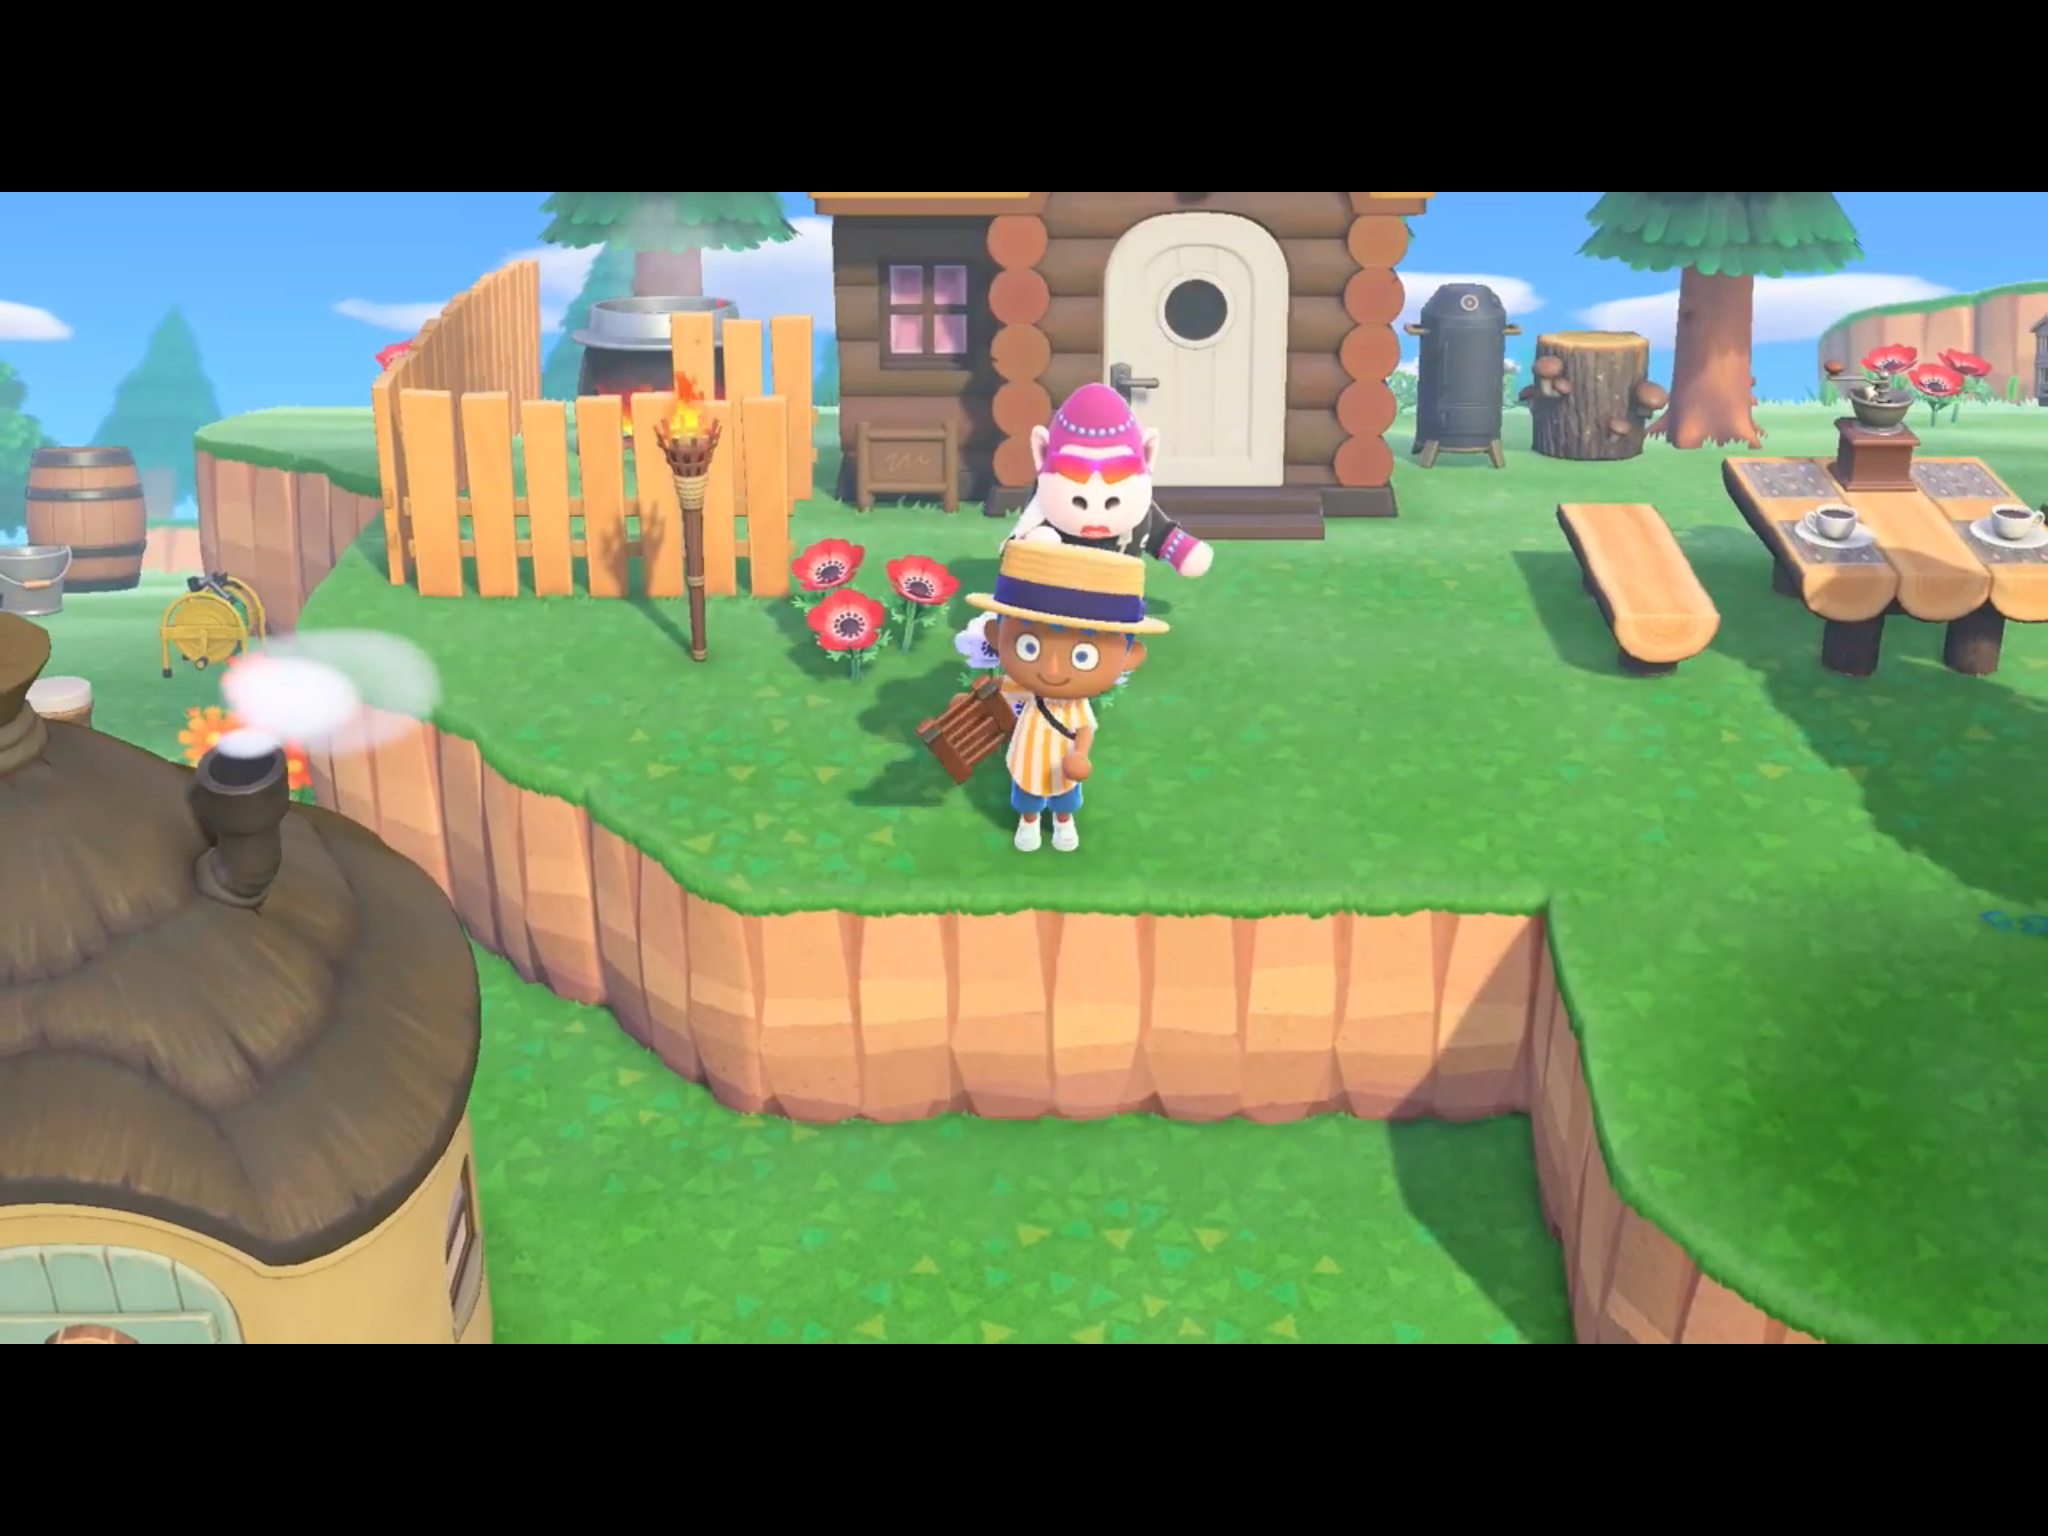 Pin By Kella Patin On Animal Crossing In 2020 Animal Crossing Animal Crossing Game Animals